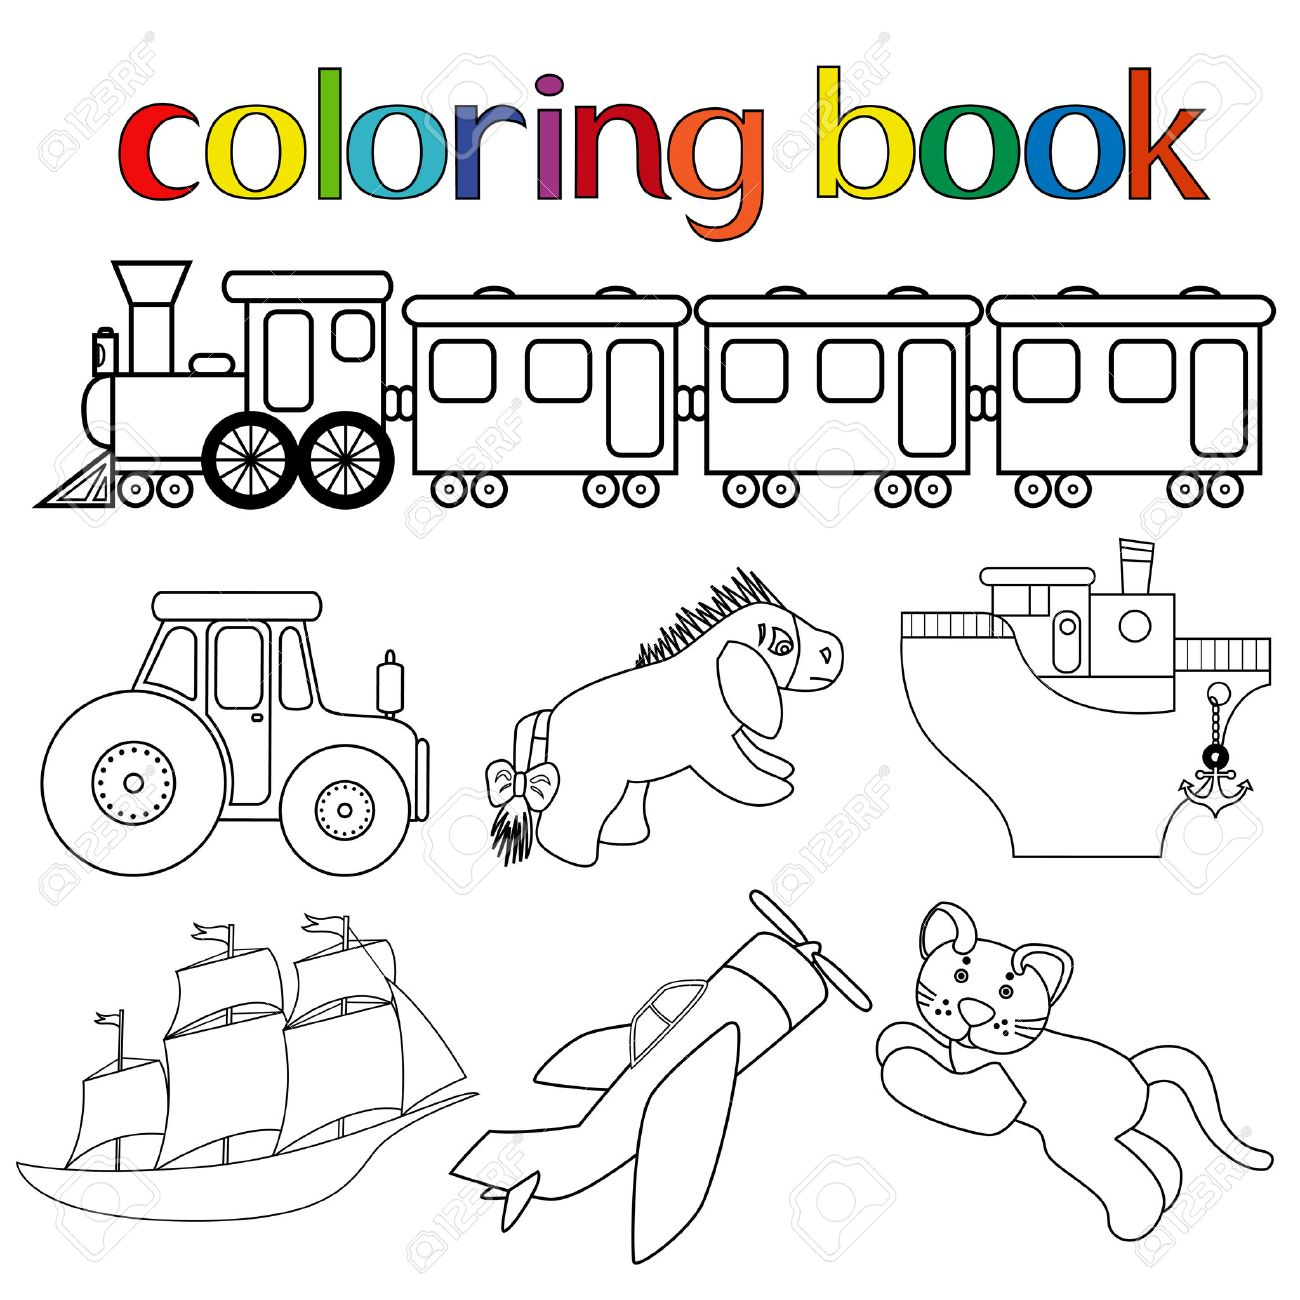 set of different toys for coloring book with train with wagons